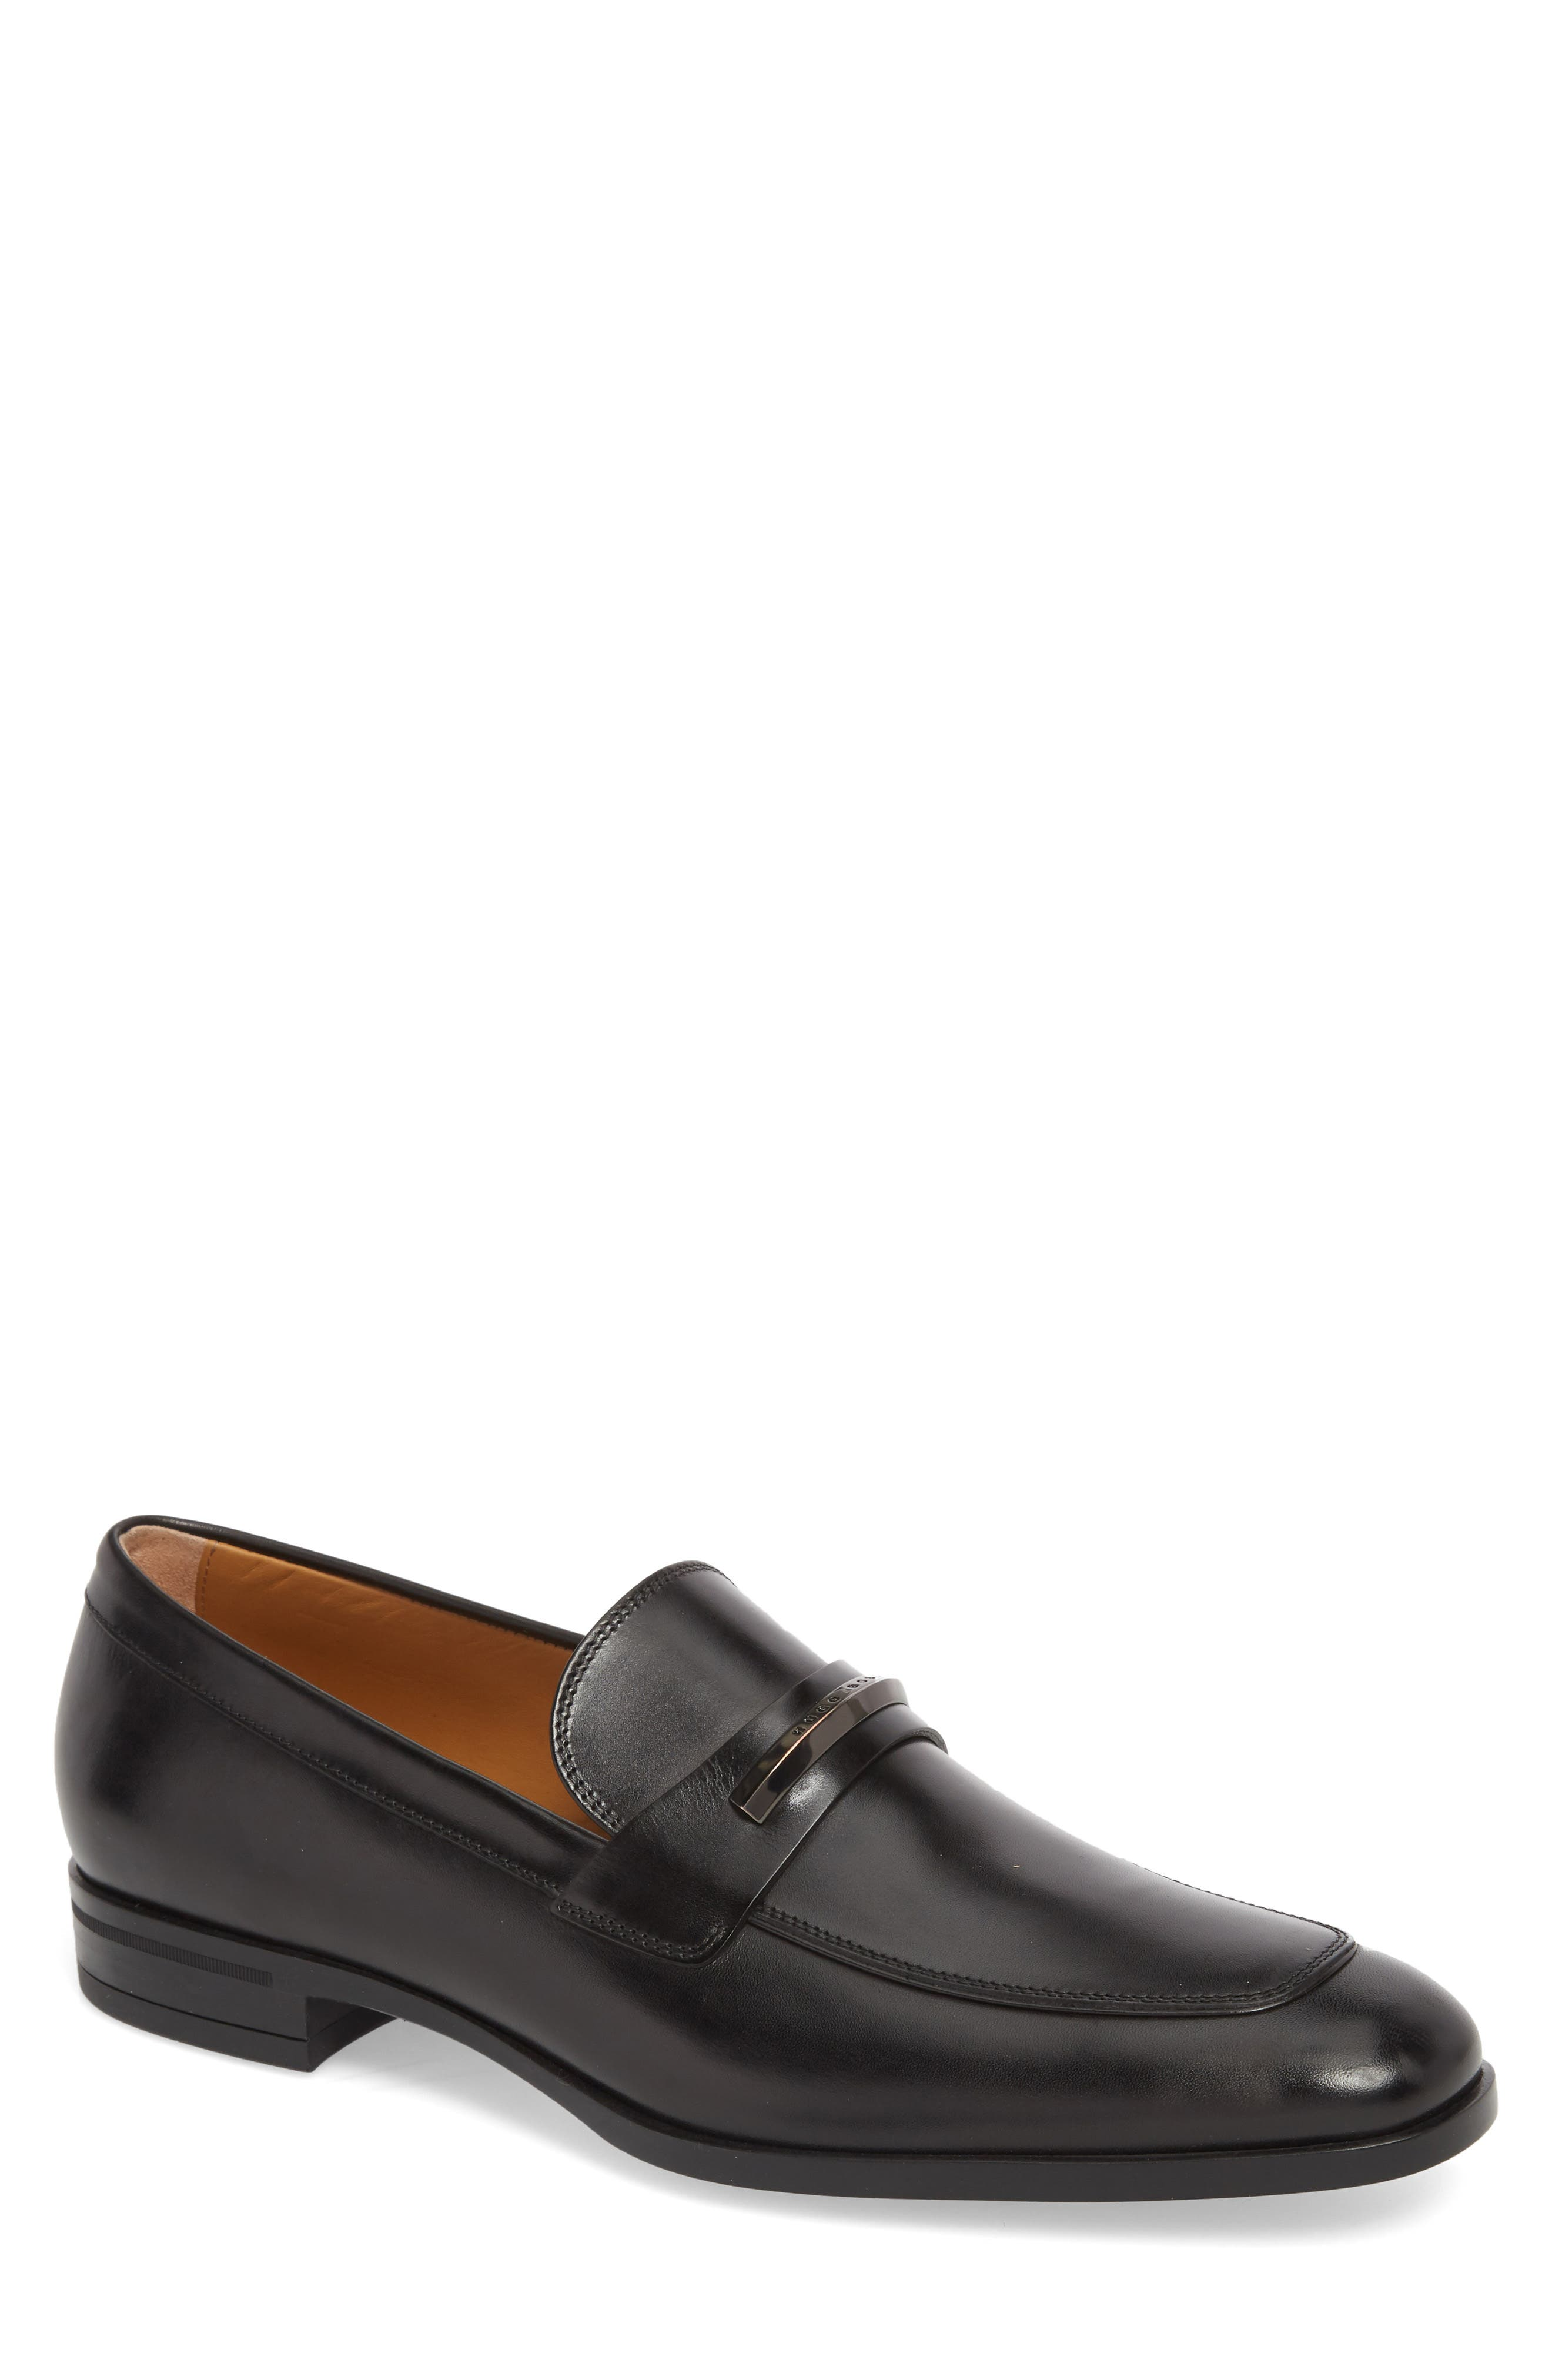 Hugo Boss Portland Solid Bit Loafer,                             Main thumbnail 1, color,                             BLACK LEATHER